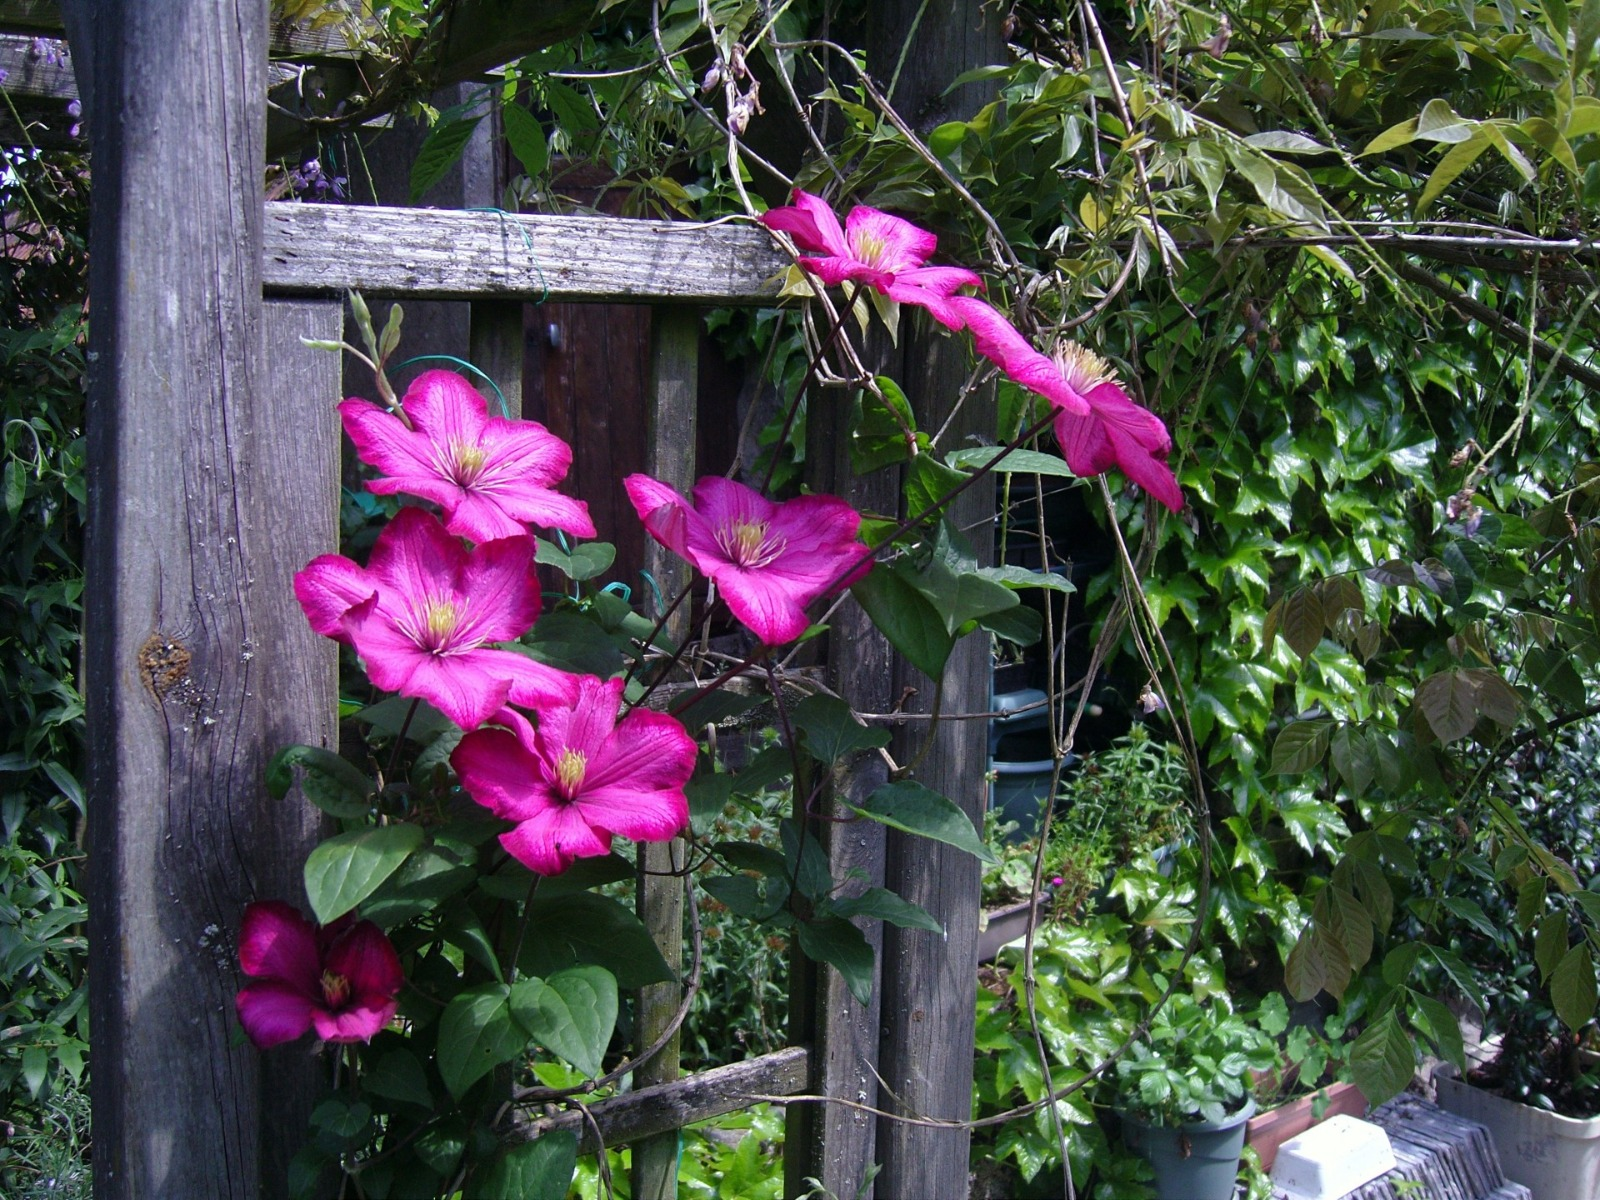 Clematis growing up a pergola